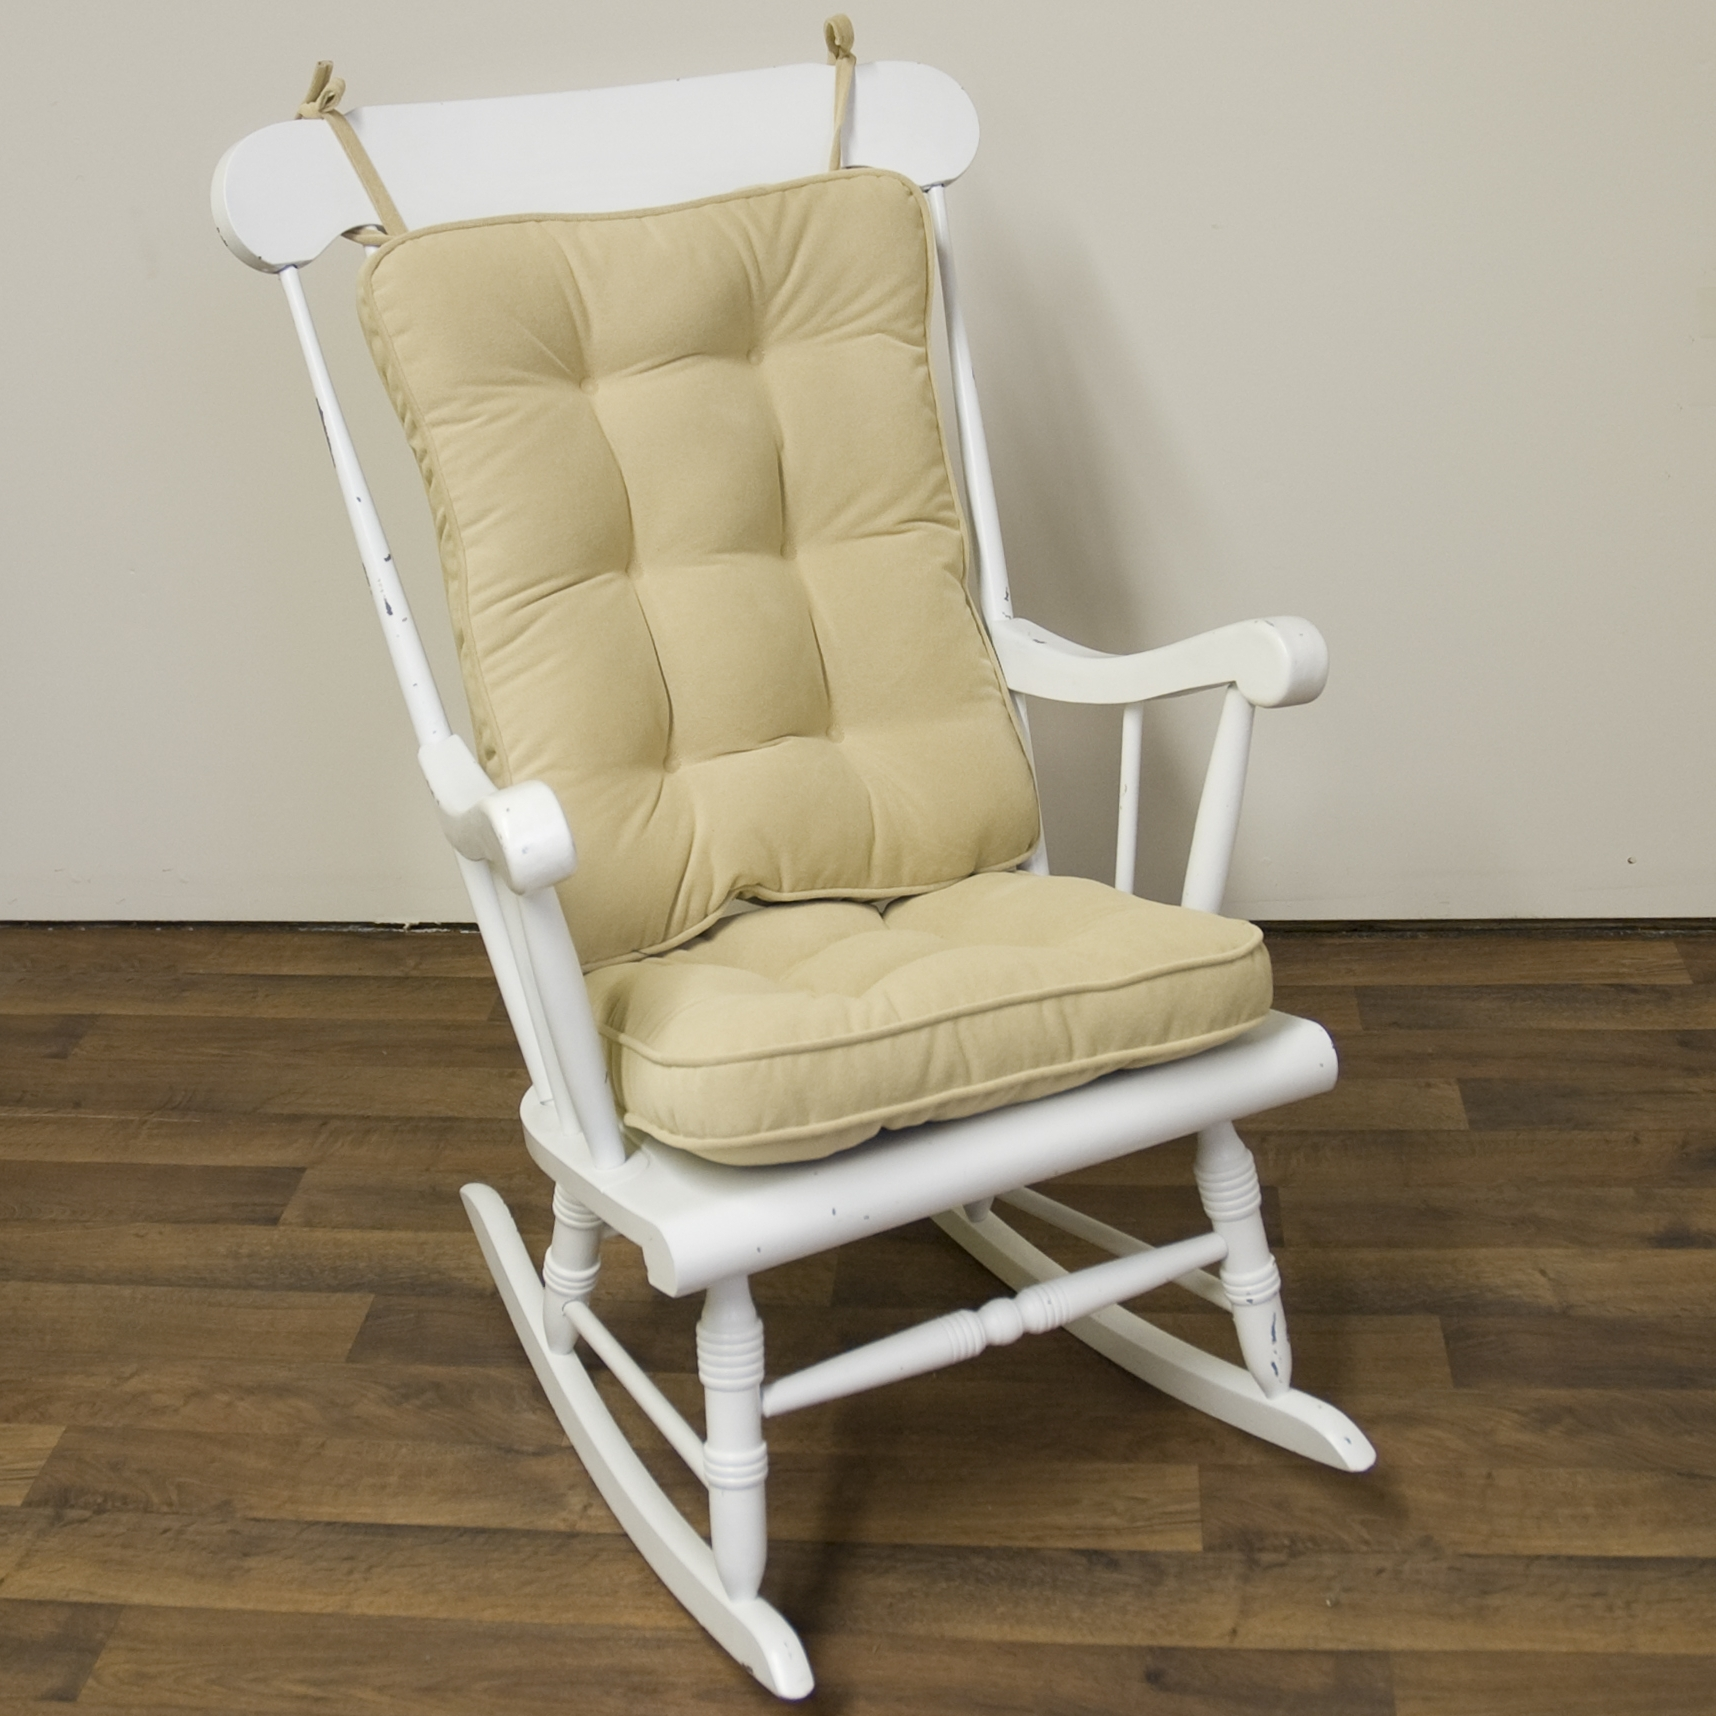 Widely Used Best Lowes Wooden Rocking Chairs #27779 Intended For Rocking Chairs At Lowes (View 15 of 15)